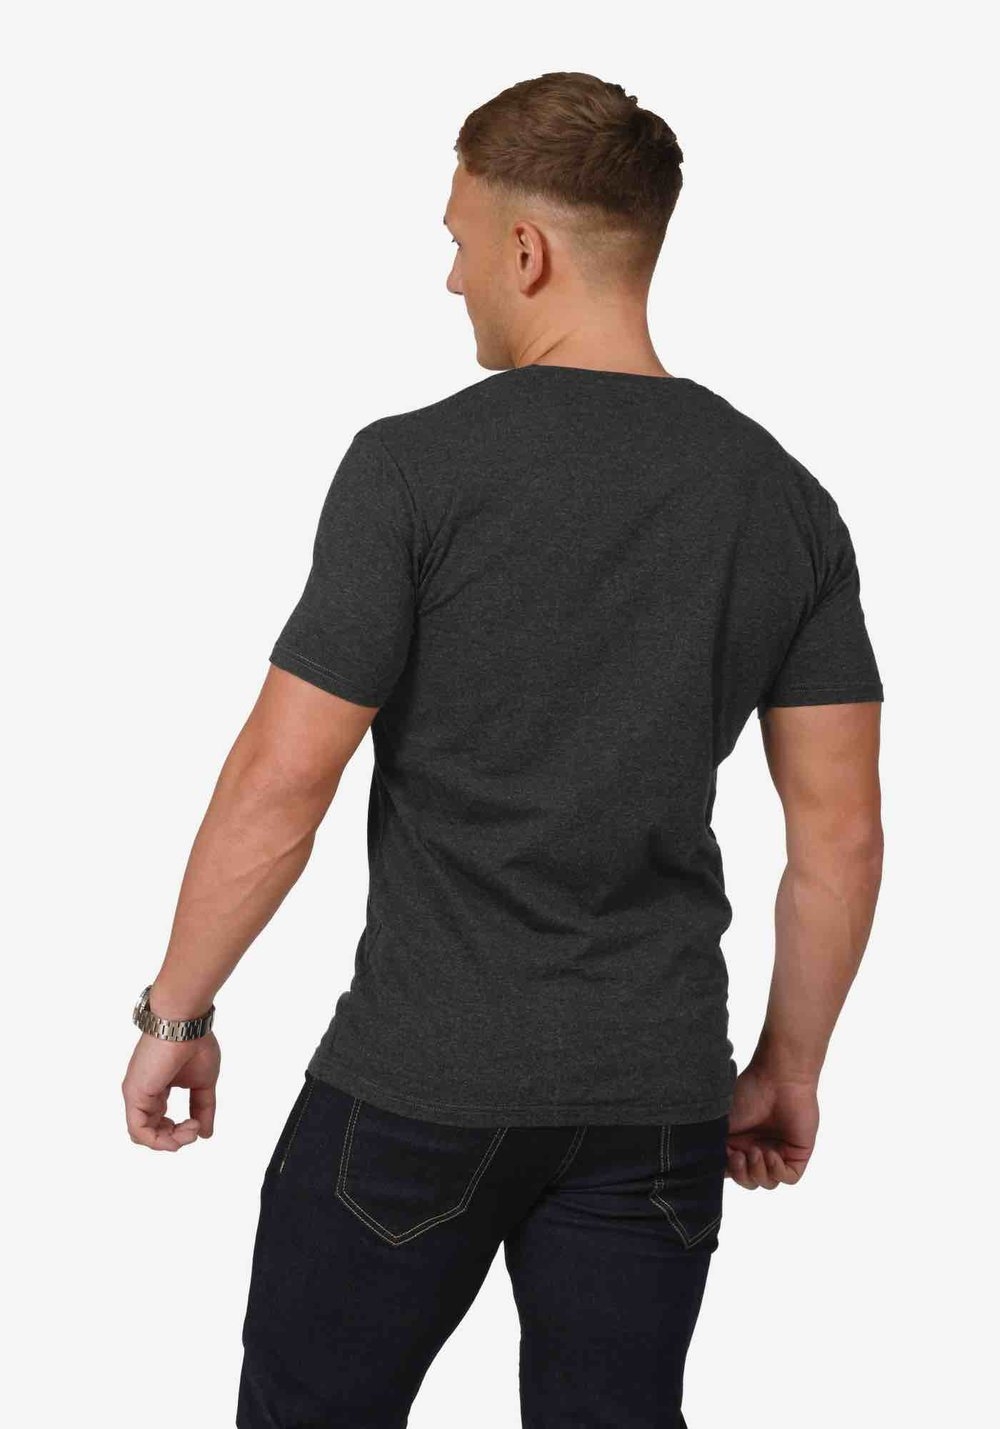 Tees_Store_Image_Grey_Back.jpg